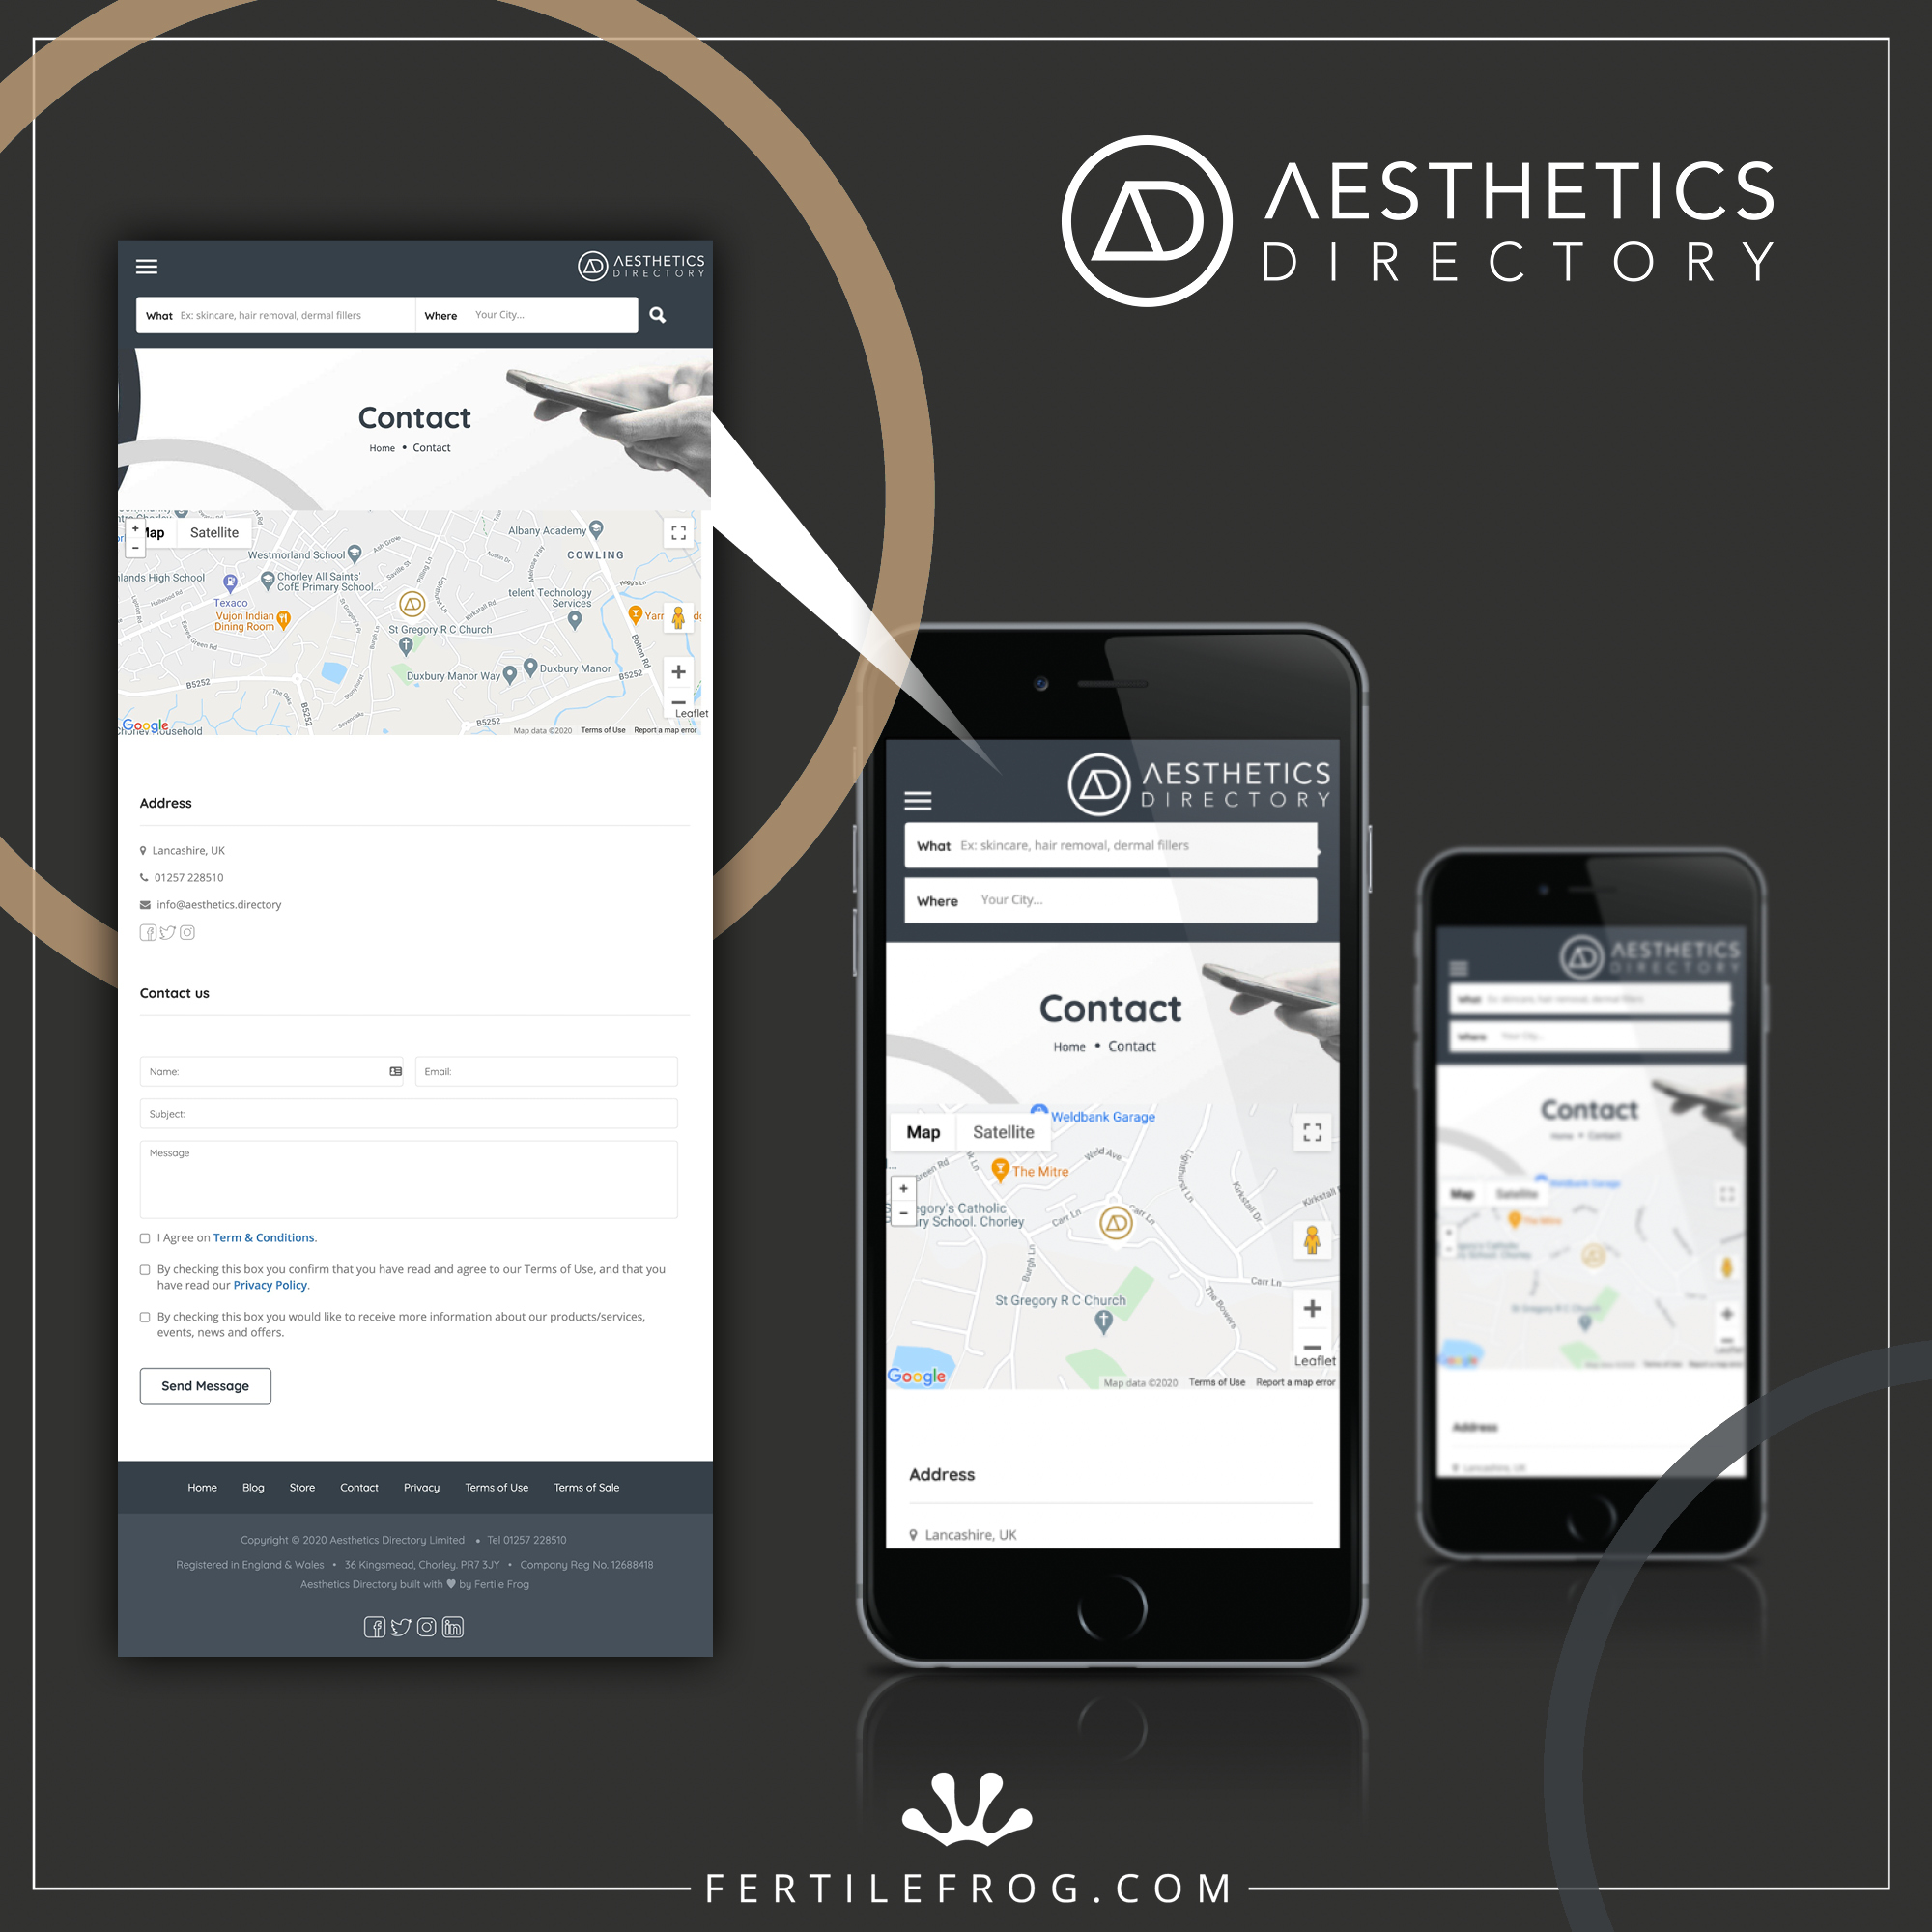 Graphic showing a screenshot of the Aesthetics Directory contact page